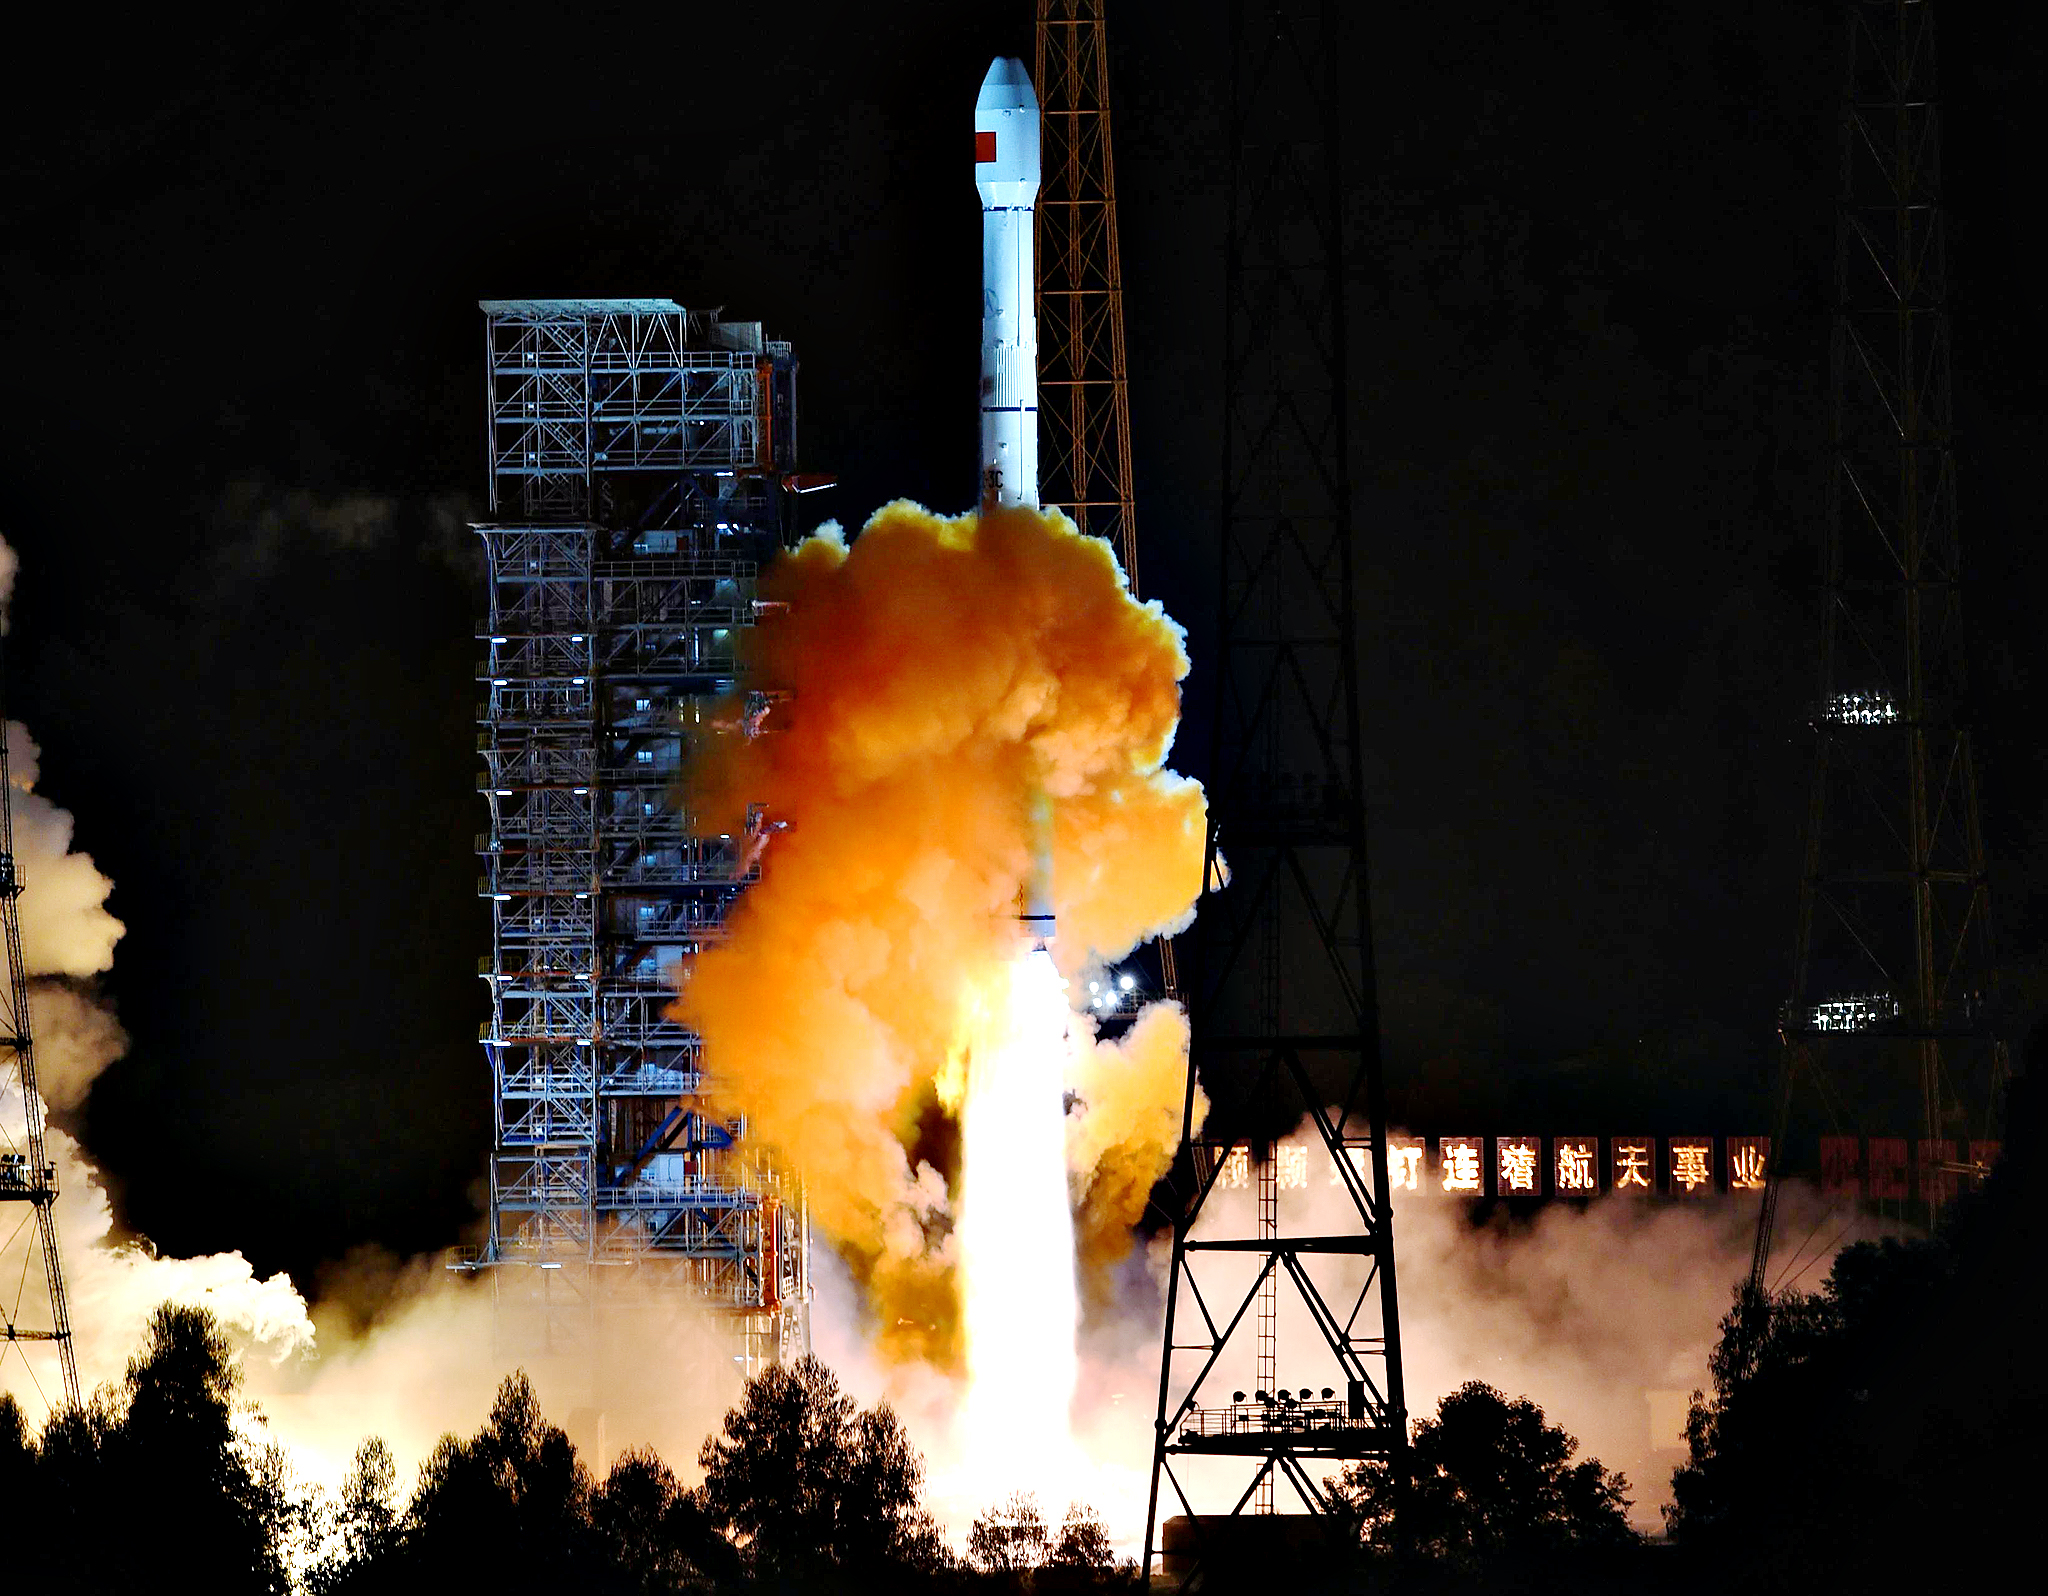 An unmanned spacecraft is launched atop an advanced Long March 3C rocket from the Xichang Satellite Launch Center in southwest China's Sichuan Province, Friday, Oct. 24, 2014. China launched an experimental spacecraft Friday to fly around the moon and back to Earth in preparation for the country's first unmanned return trip to the lunar surface.